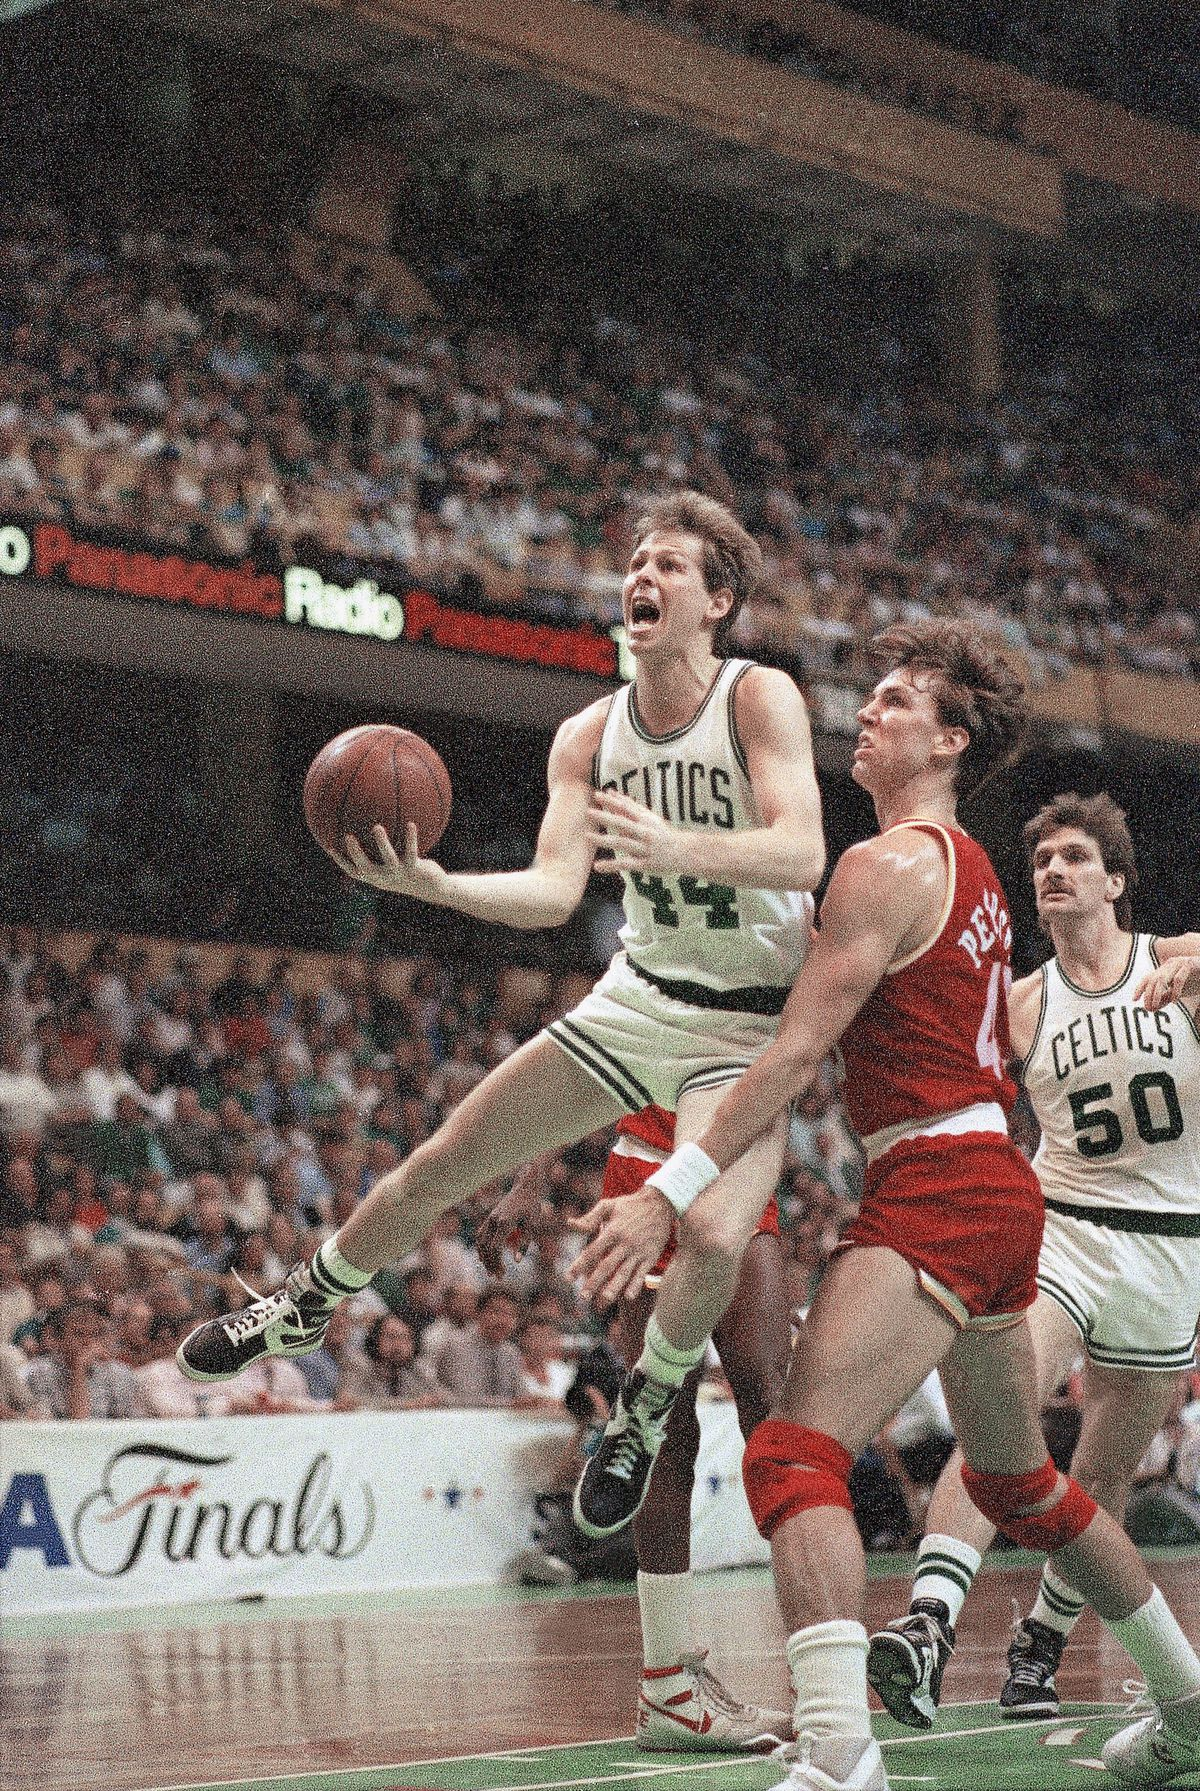 Boston's Danny Ainge (44) drives past Houston's Jim Petersen in an NBA playoff game at Boston Garden.